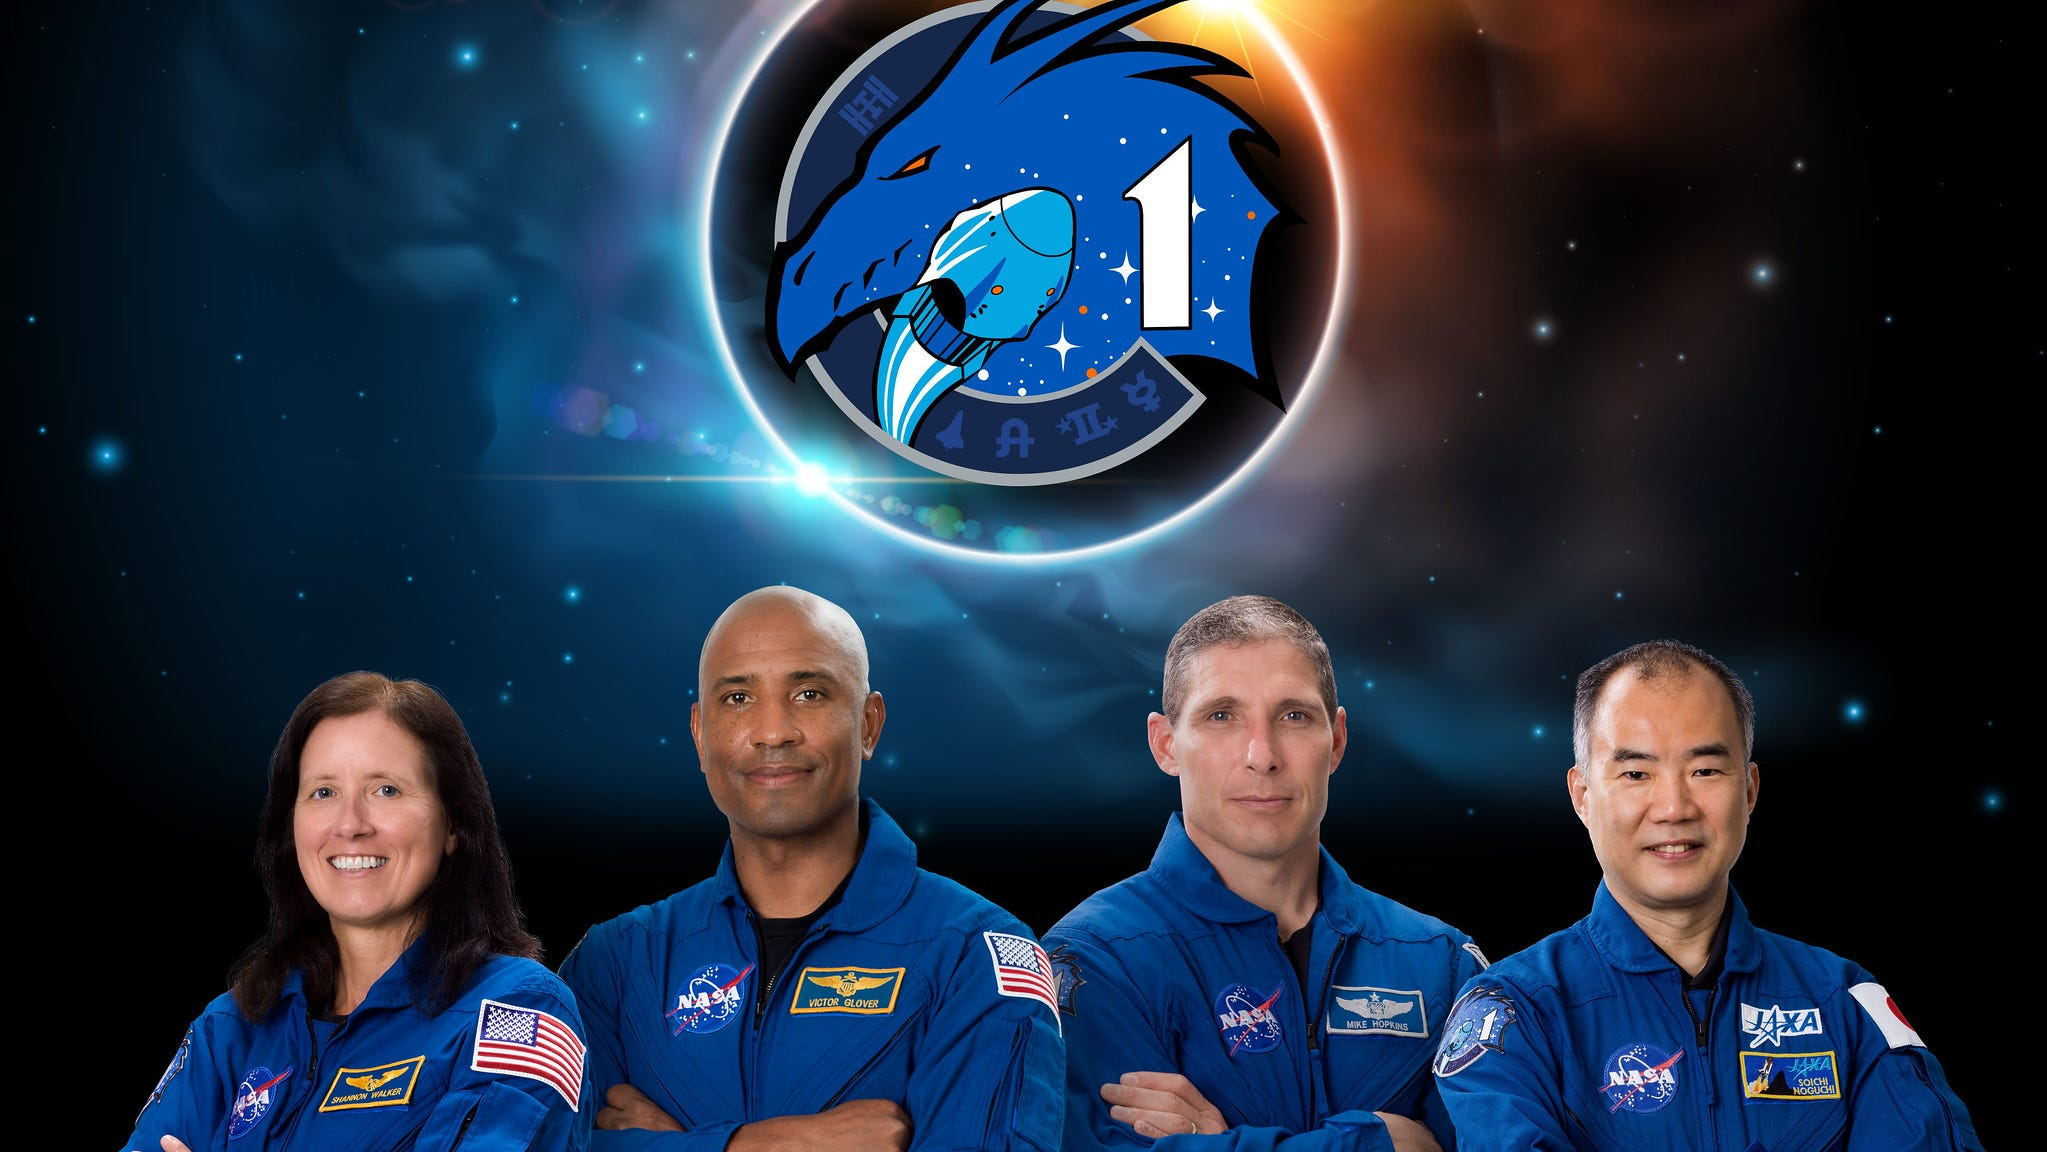 From left to right: NASA astronauts Shannon Walker, Victor Glover, and Michael Hopkins; and Japan Aerospace Exploration Agency astronaut Soichi Noguchi will fly to the International Space Station on SpaceX's first certified crewed flight.